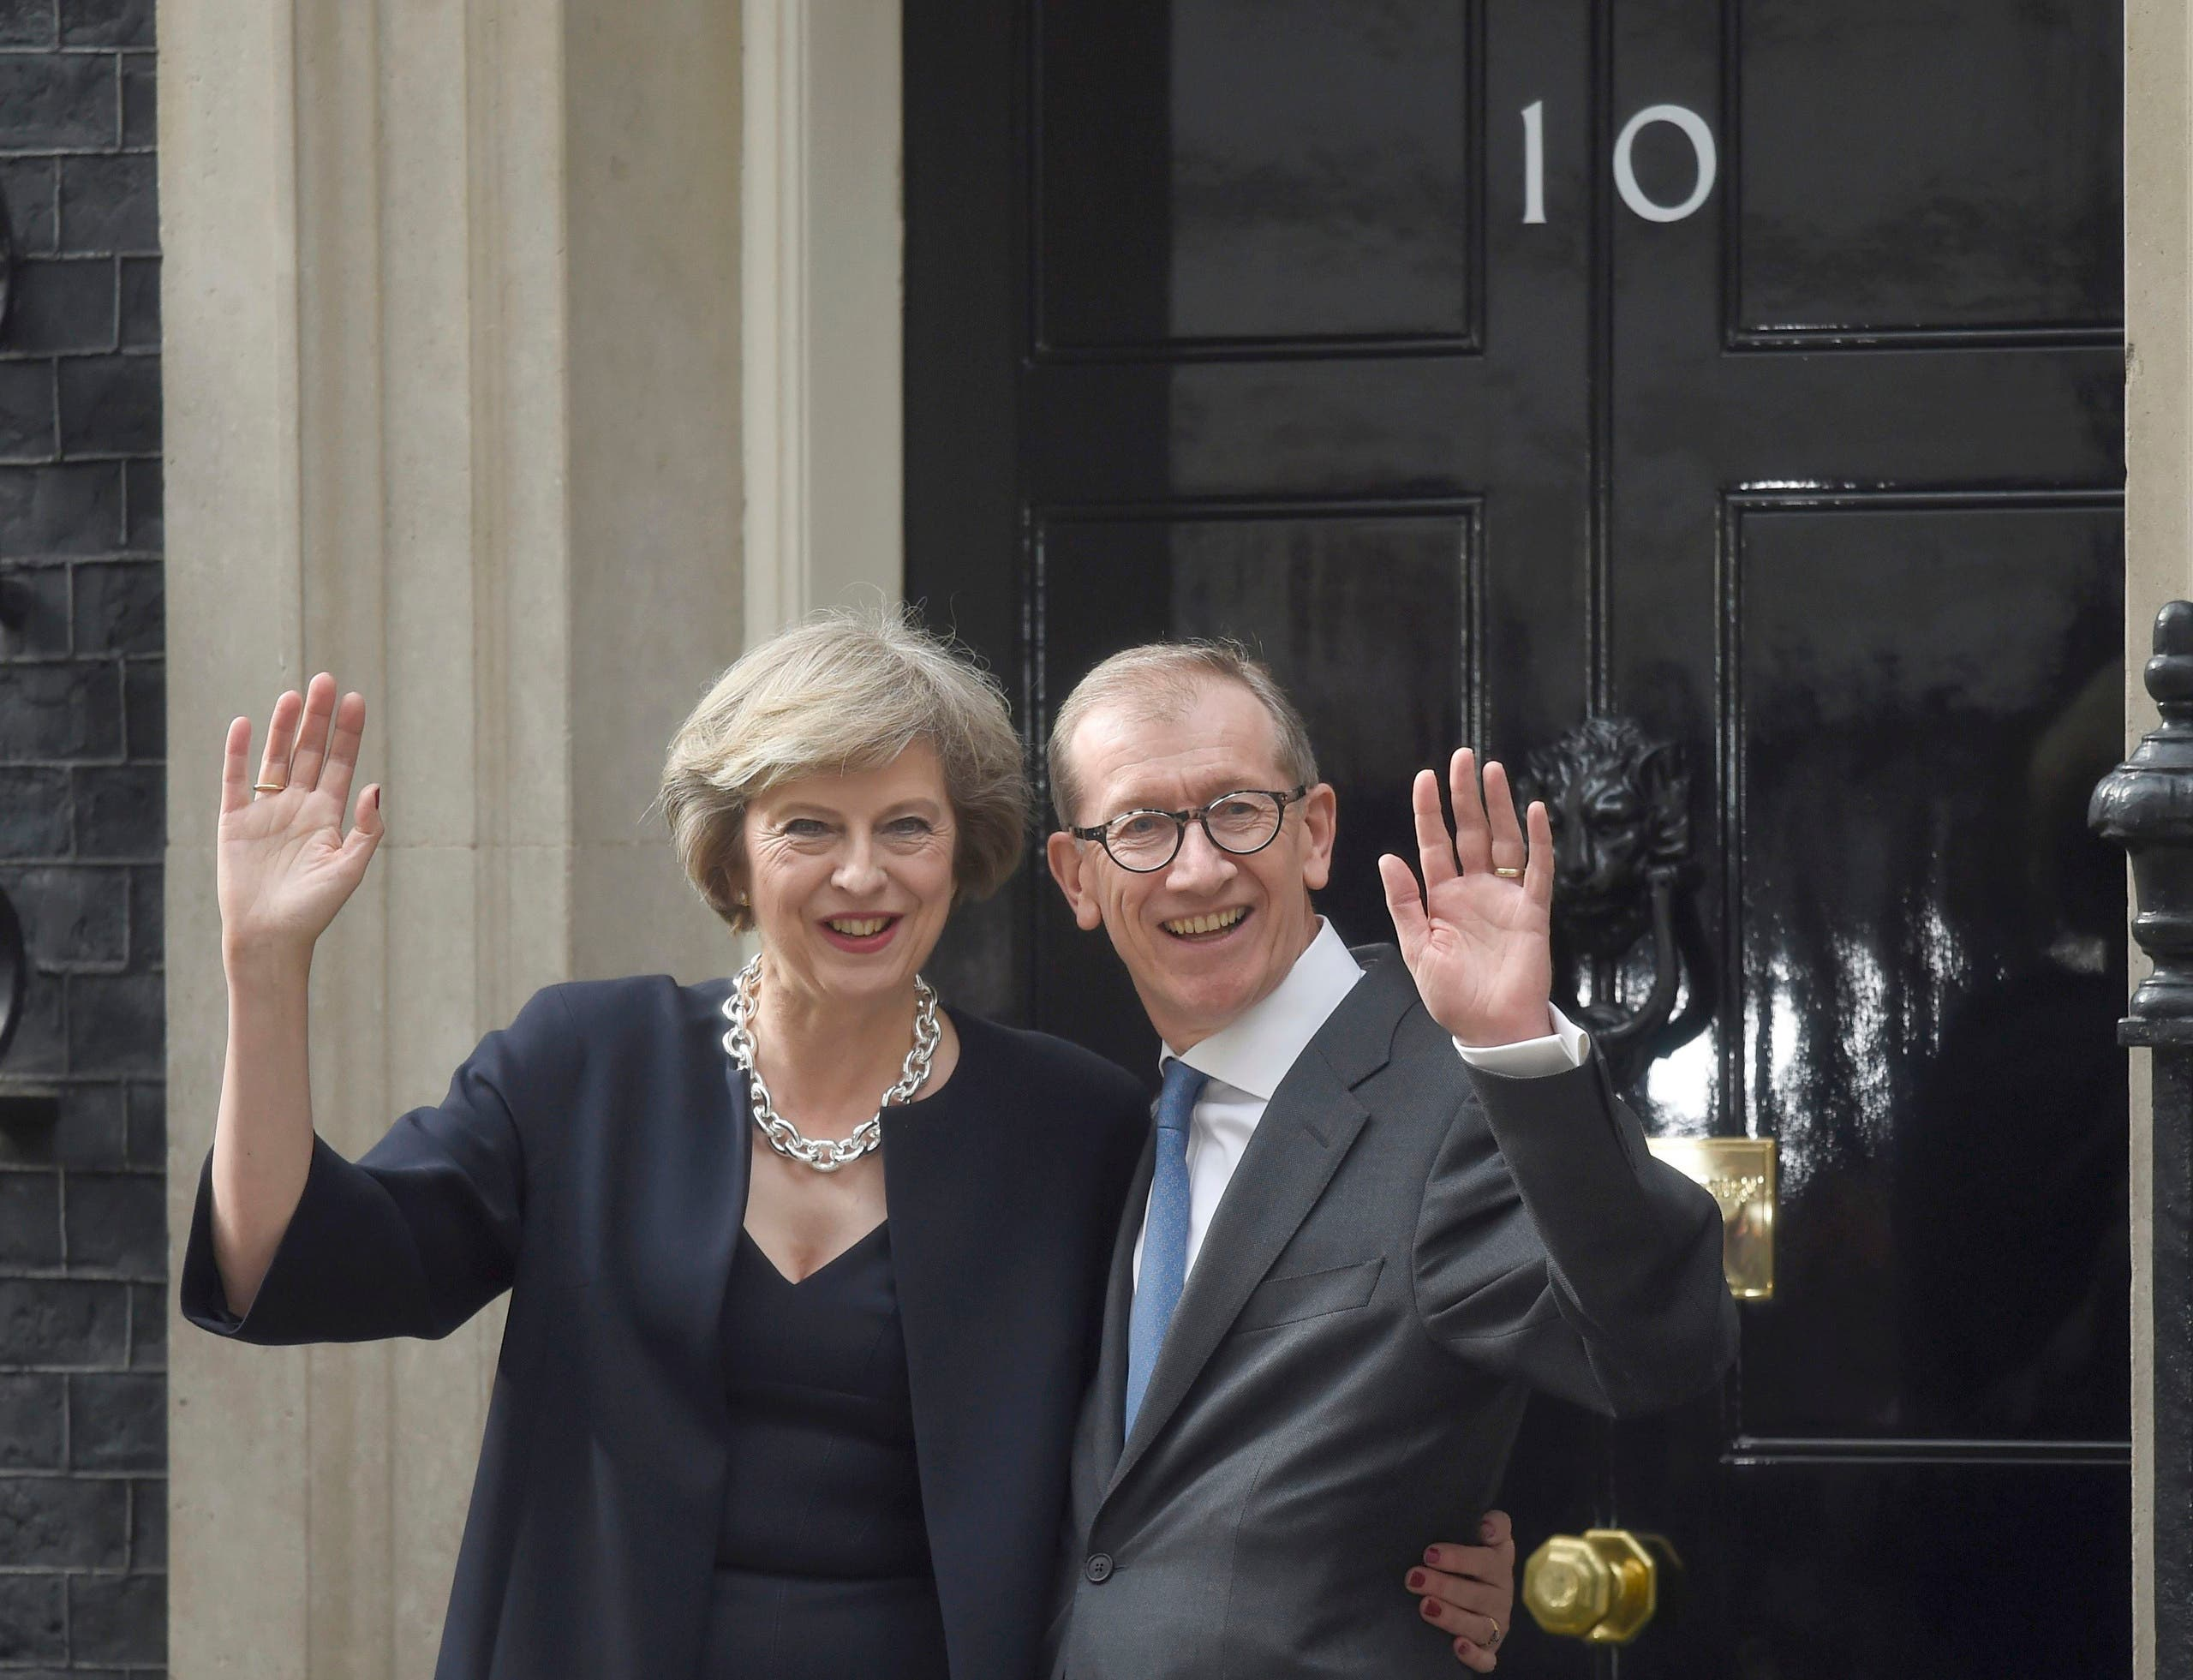 Britain's Prime Minister, Theresa May, and husband Philip pose for the media outside number 10 Downing Street, in central London, Britain July 13, 2016. (Reuters)